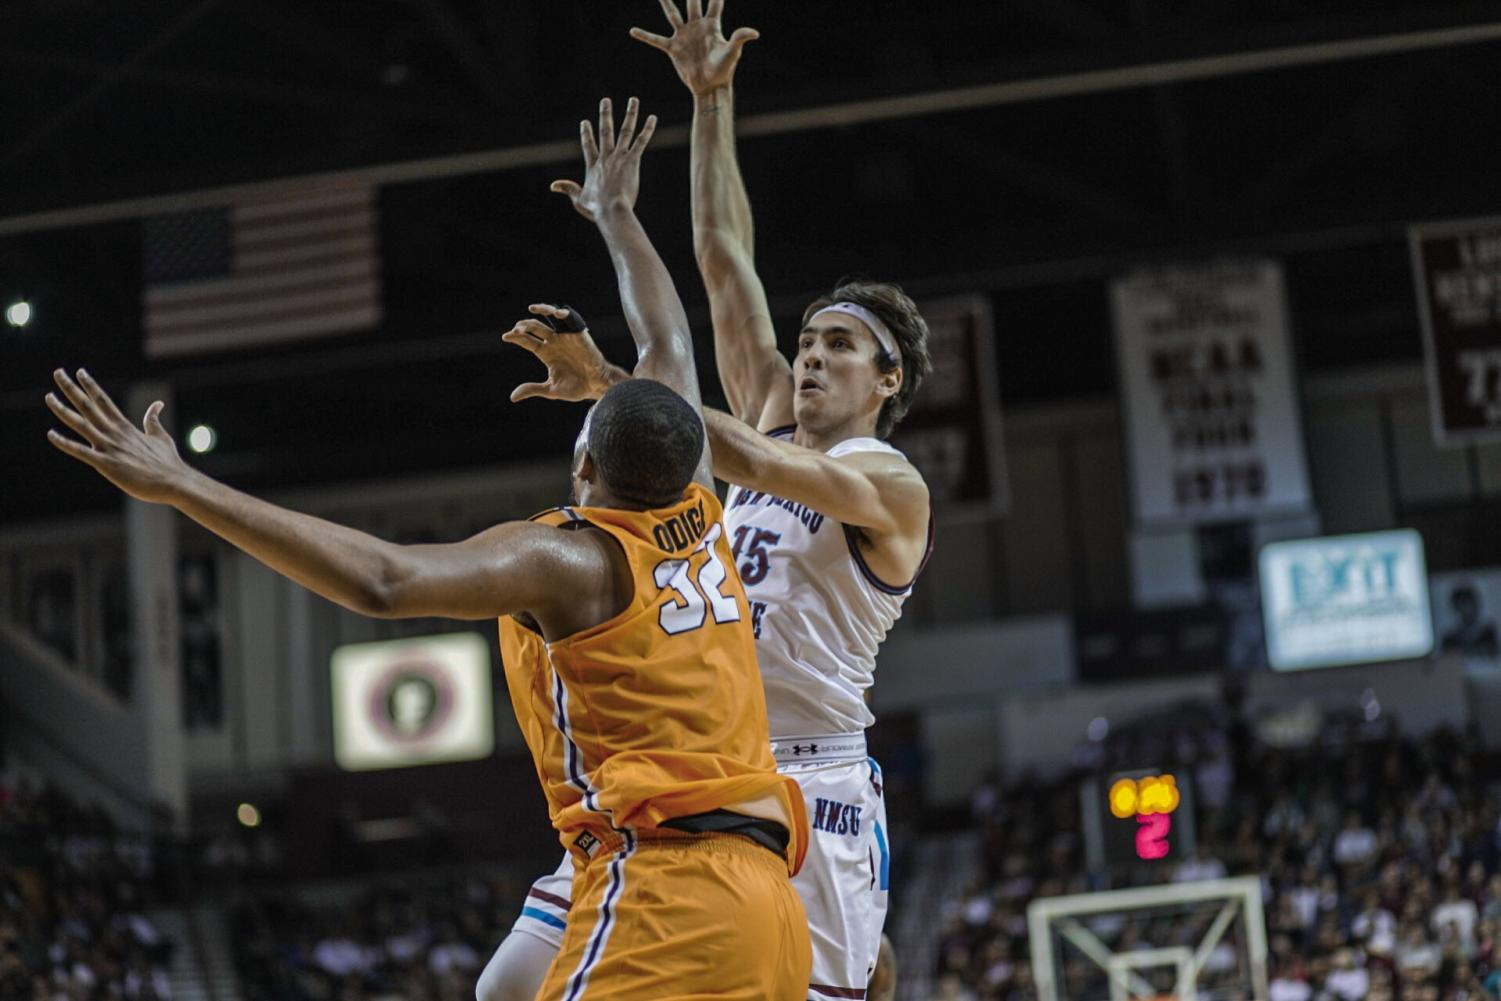 Ivan Aurrecoechea led the Aggies with 15 points on the night.